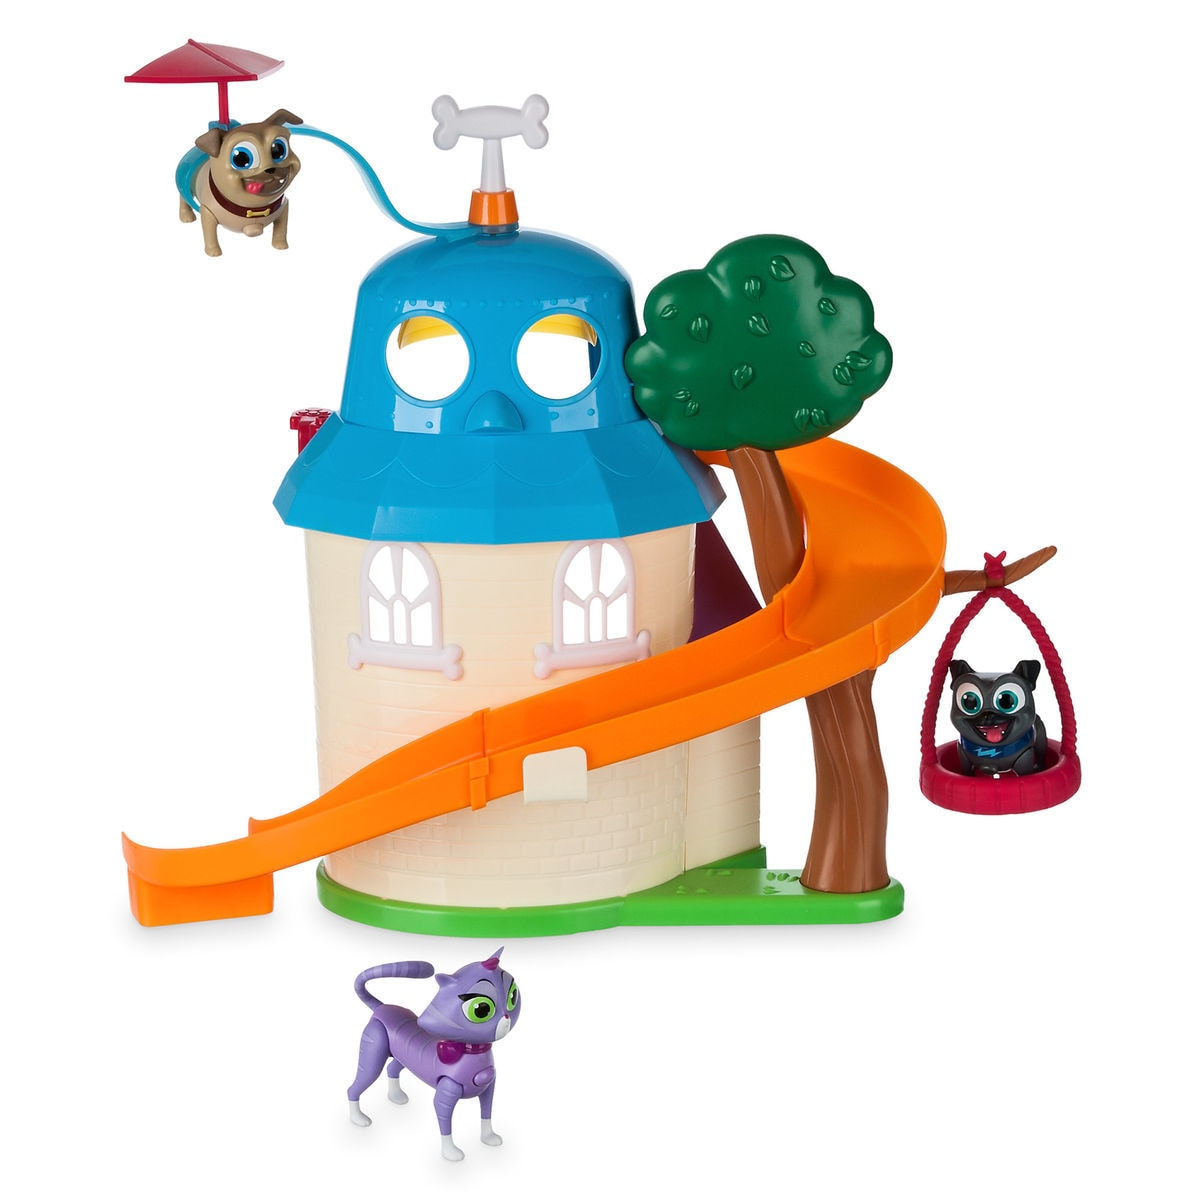 Puppy Dog Pals Ultimate Doghouse Playset With Light Up Figures